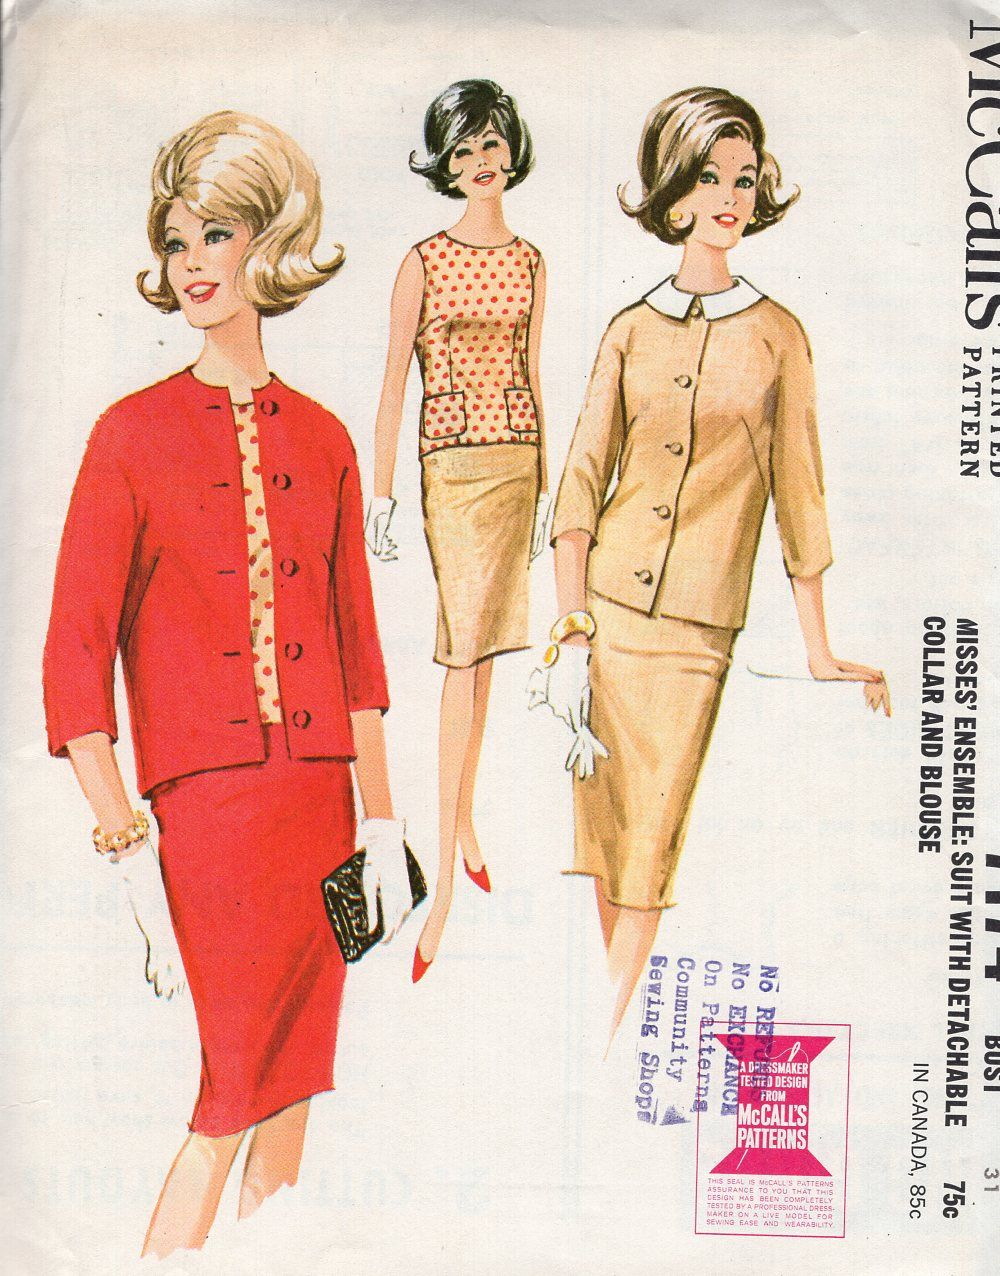 ea027fa375 McCall's 7174 Free Us Ship Sewing Pattern Vintage Retro 1960s 60s Uncut  Jackie Suit Jacket Pencil Skirt Blouse Pockets Size 10 Bust 31 by  LanetzLiving on ...